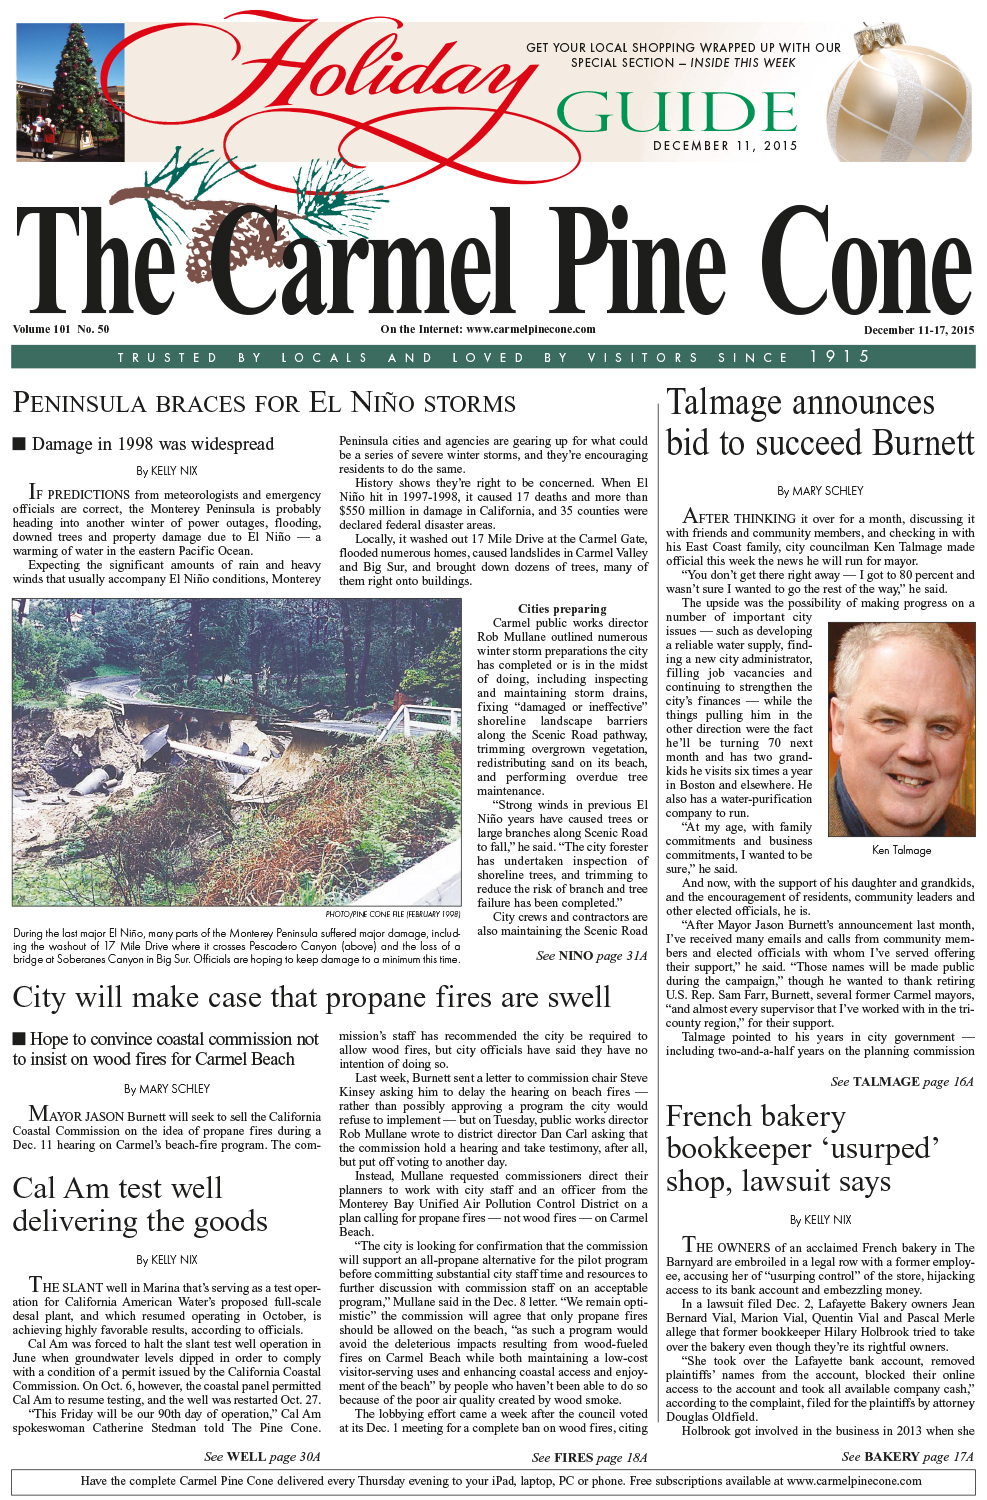 The December 11, 2015, front page of The Carmel                 Pine Cone